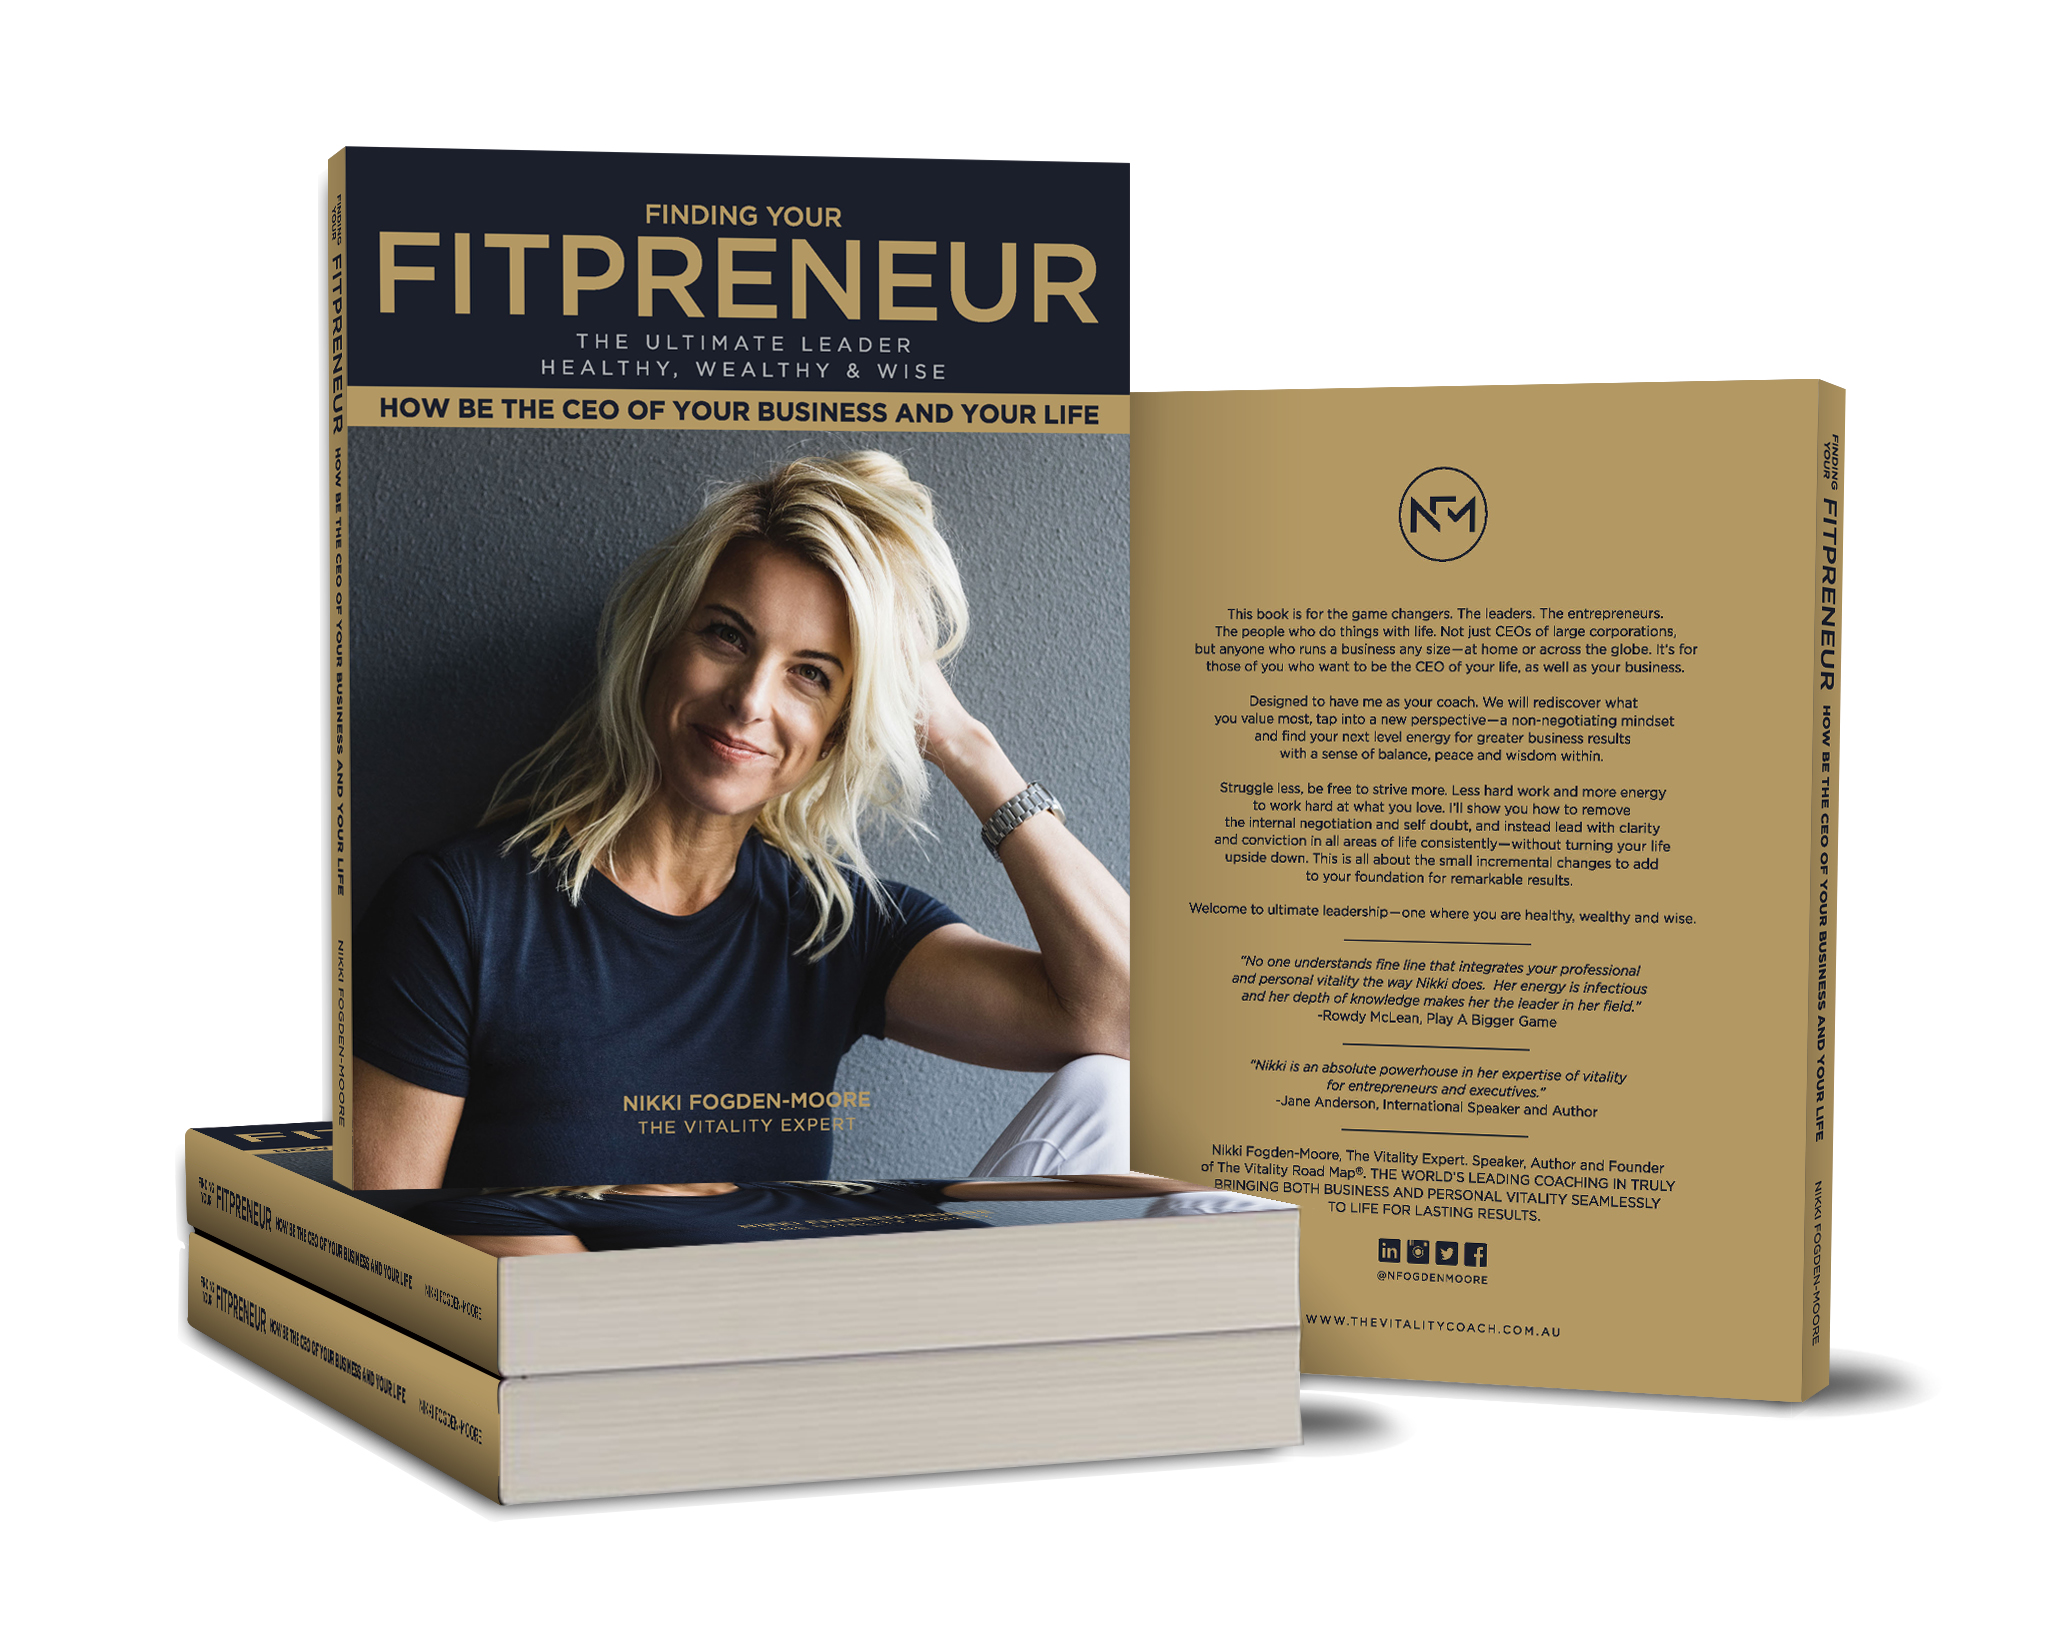 FITPRENEUR THE BOOK